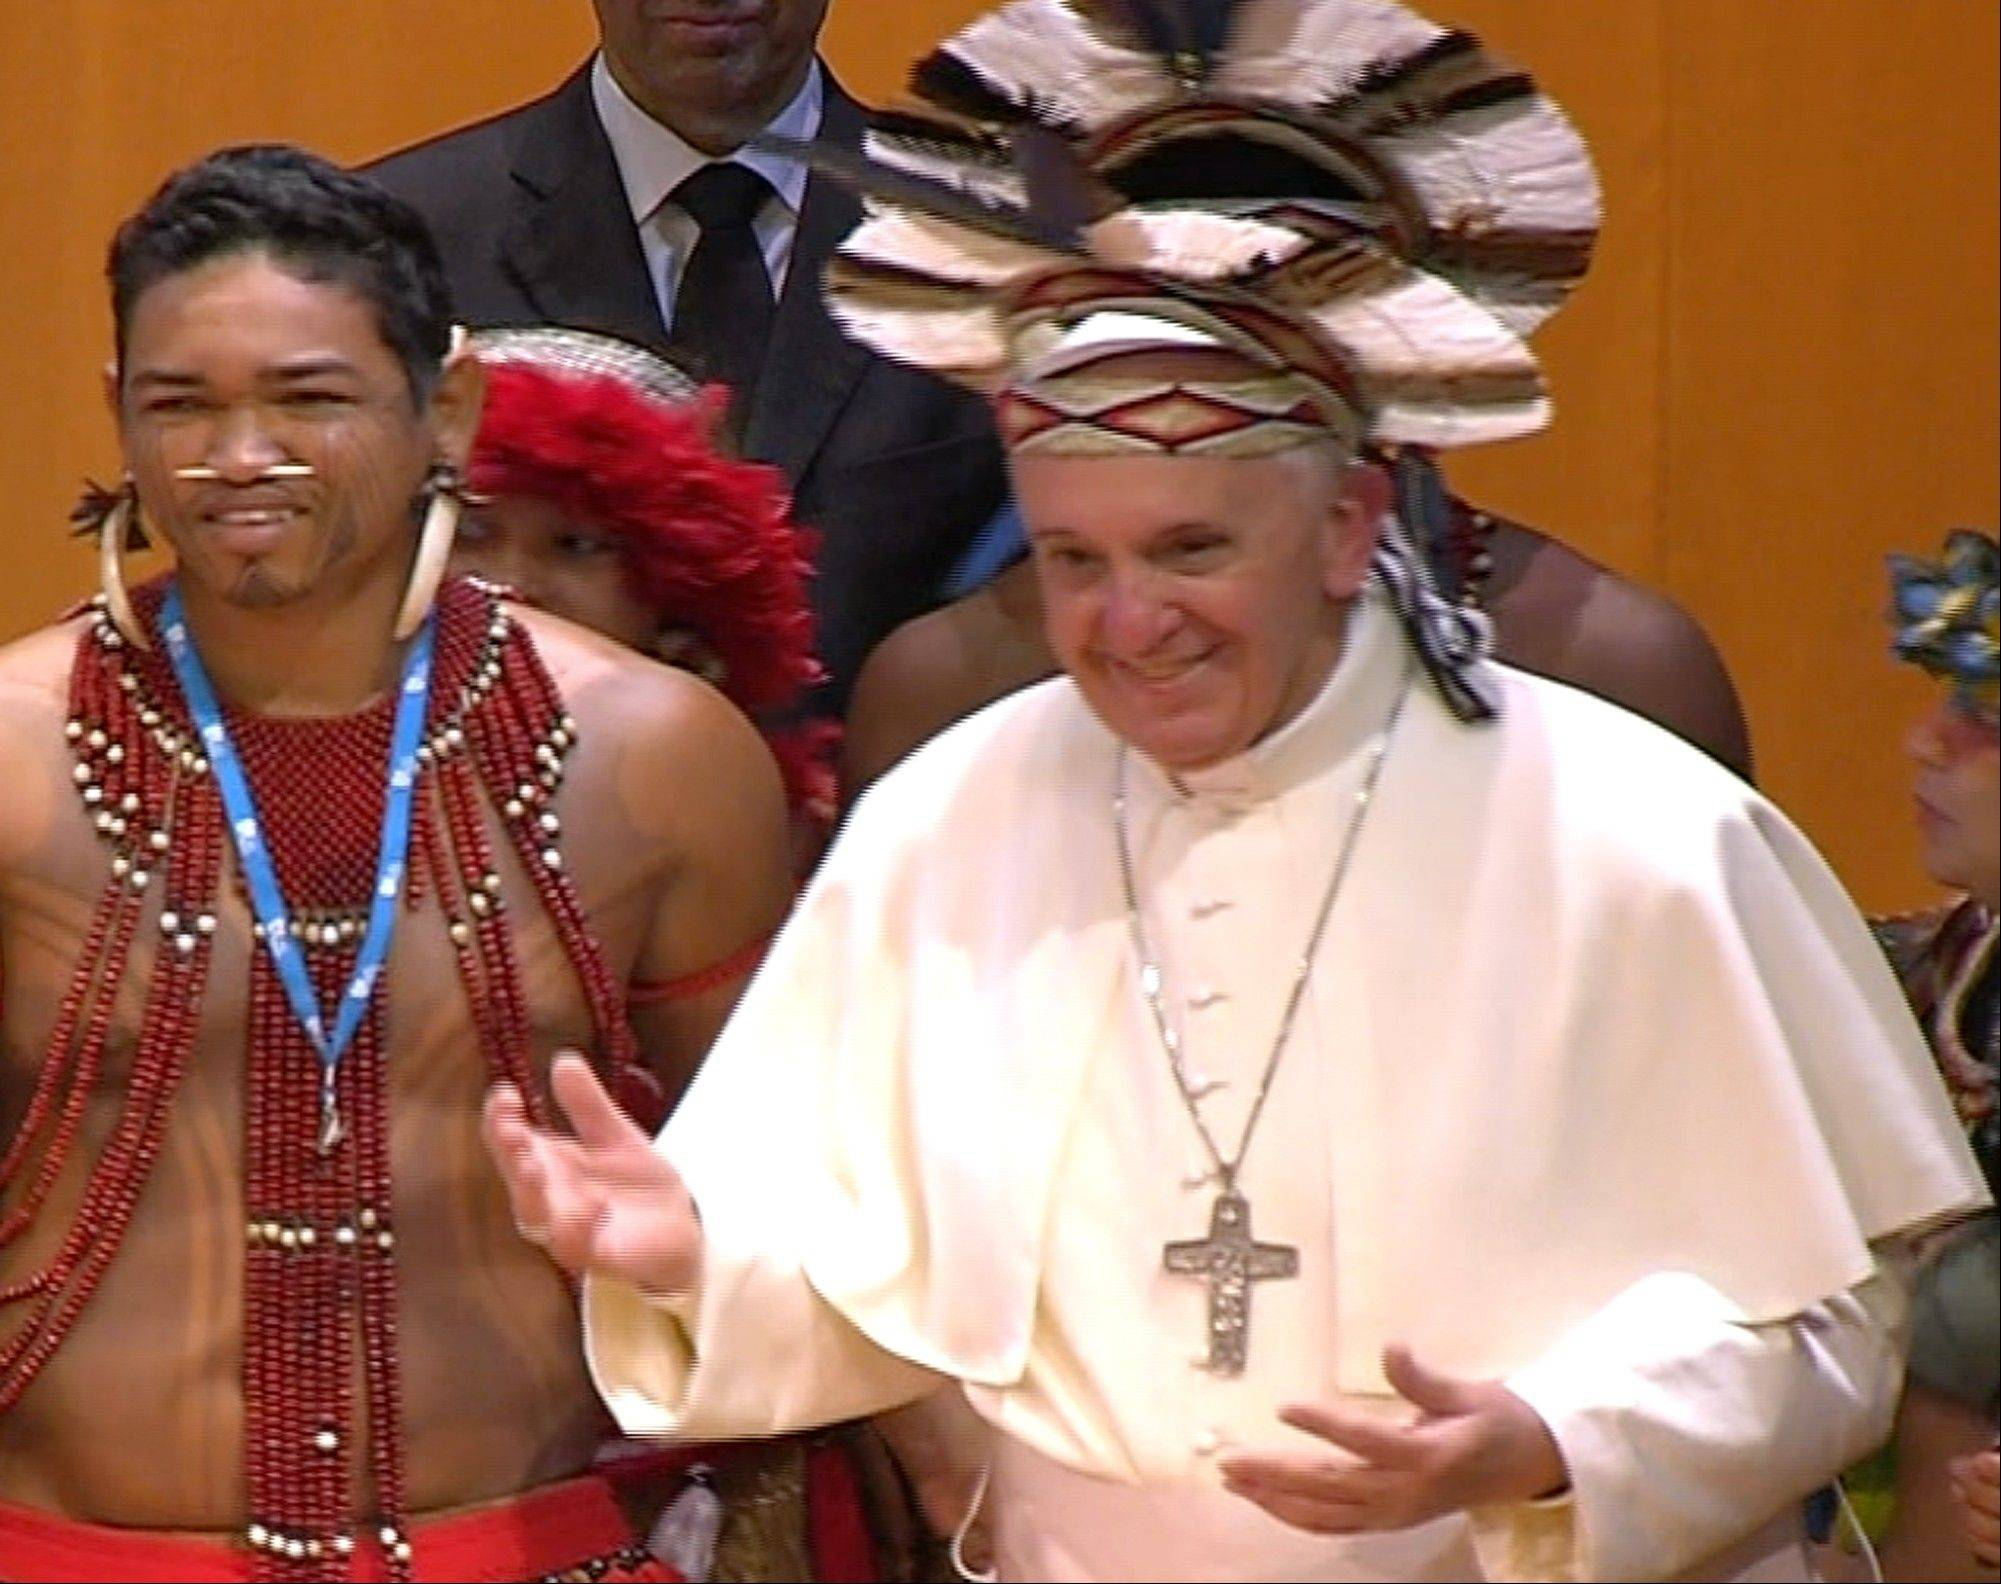 Associated Press In this frame grab from video Pope Francis wears an indigenous feather hat given to him by representatives of one of Brazil�s native tribes during a meeting at the Municipal Theater in Rio de Janeiro on Saturday, July 27. Pope Francis is on the sixth day of his trip to Brazil where he will attend the 2013 World Youth Day in Rio.